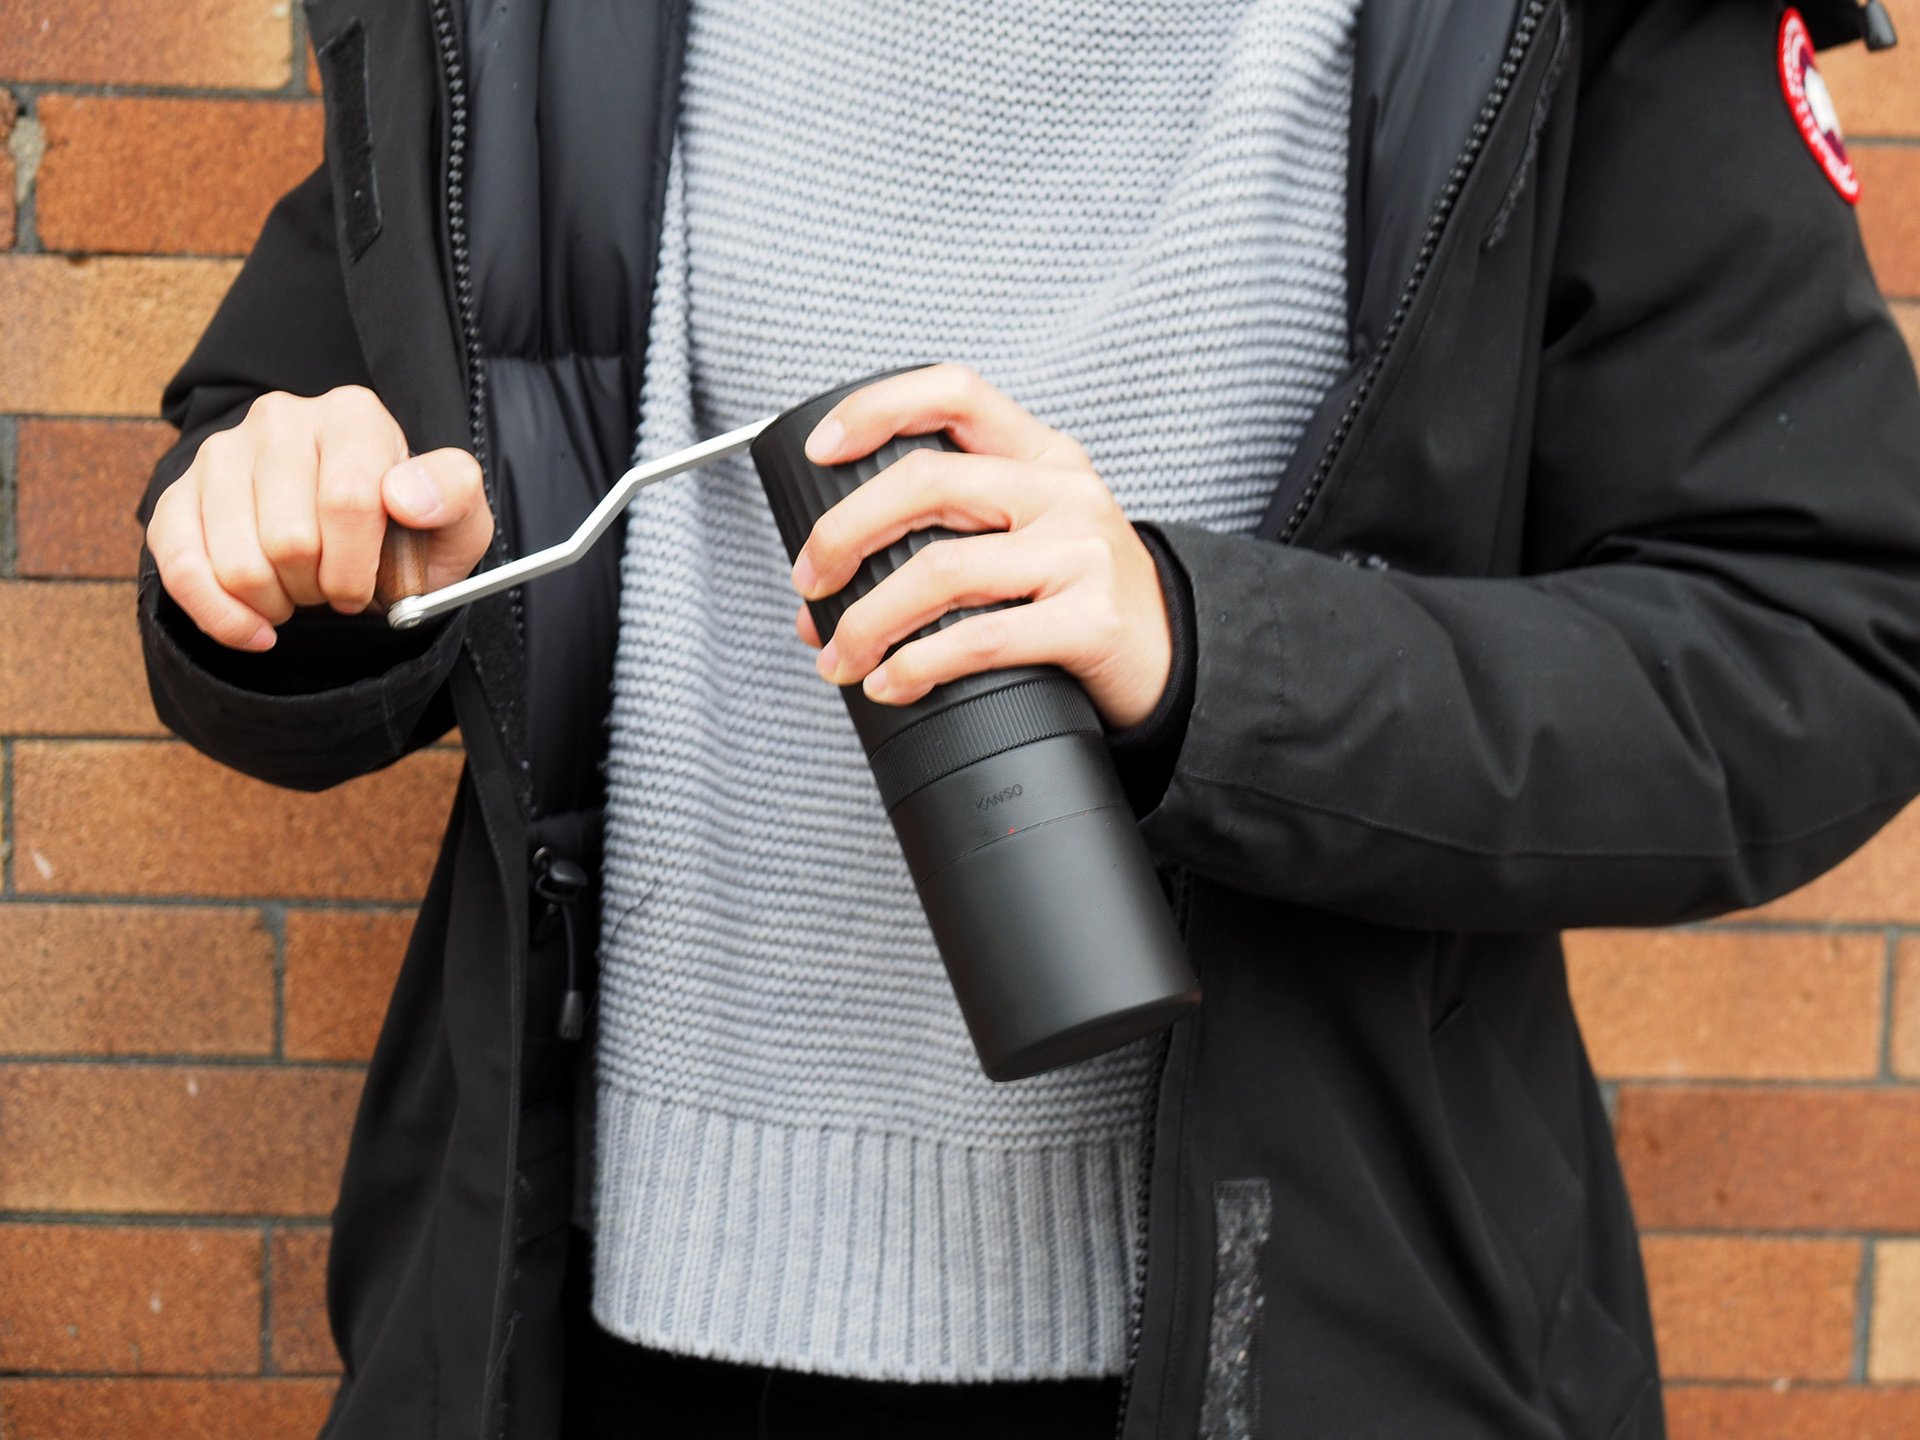 A woman holding the HIKU hand coffee grinder, gripping the handle like she is grinding coffee.